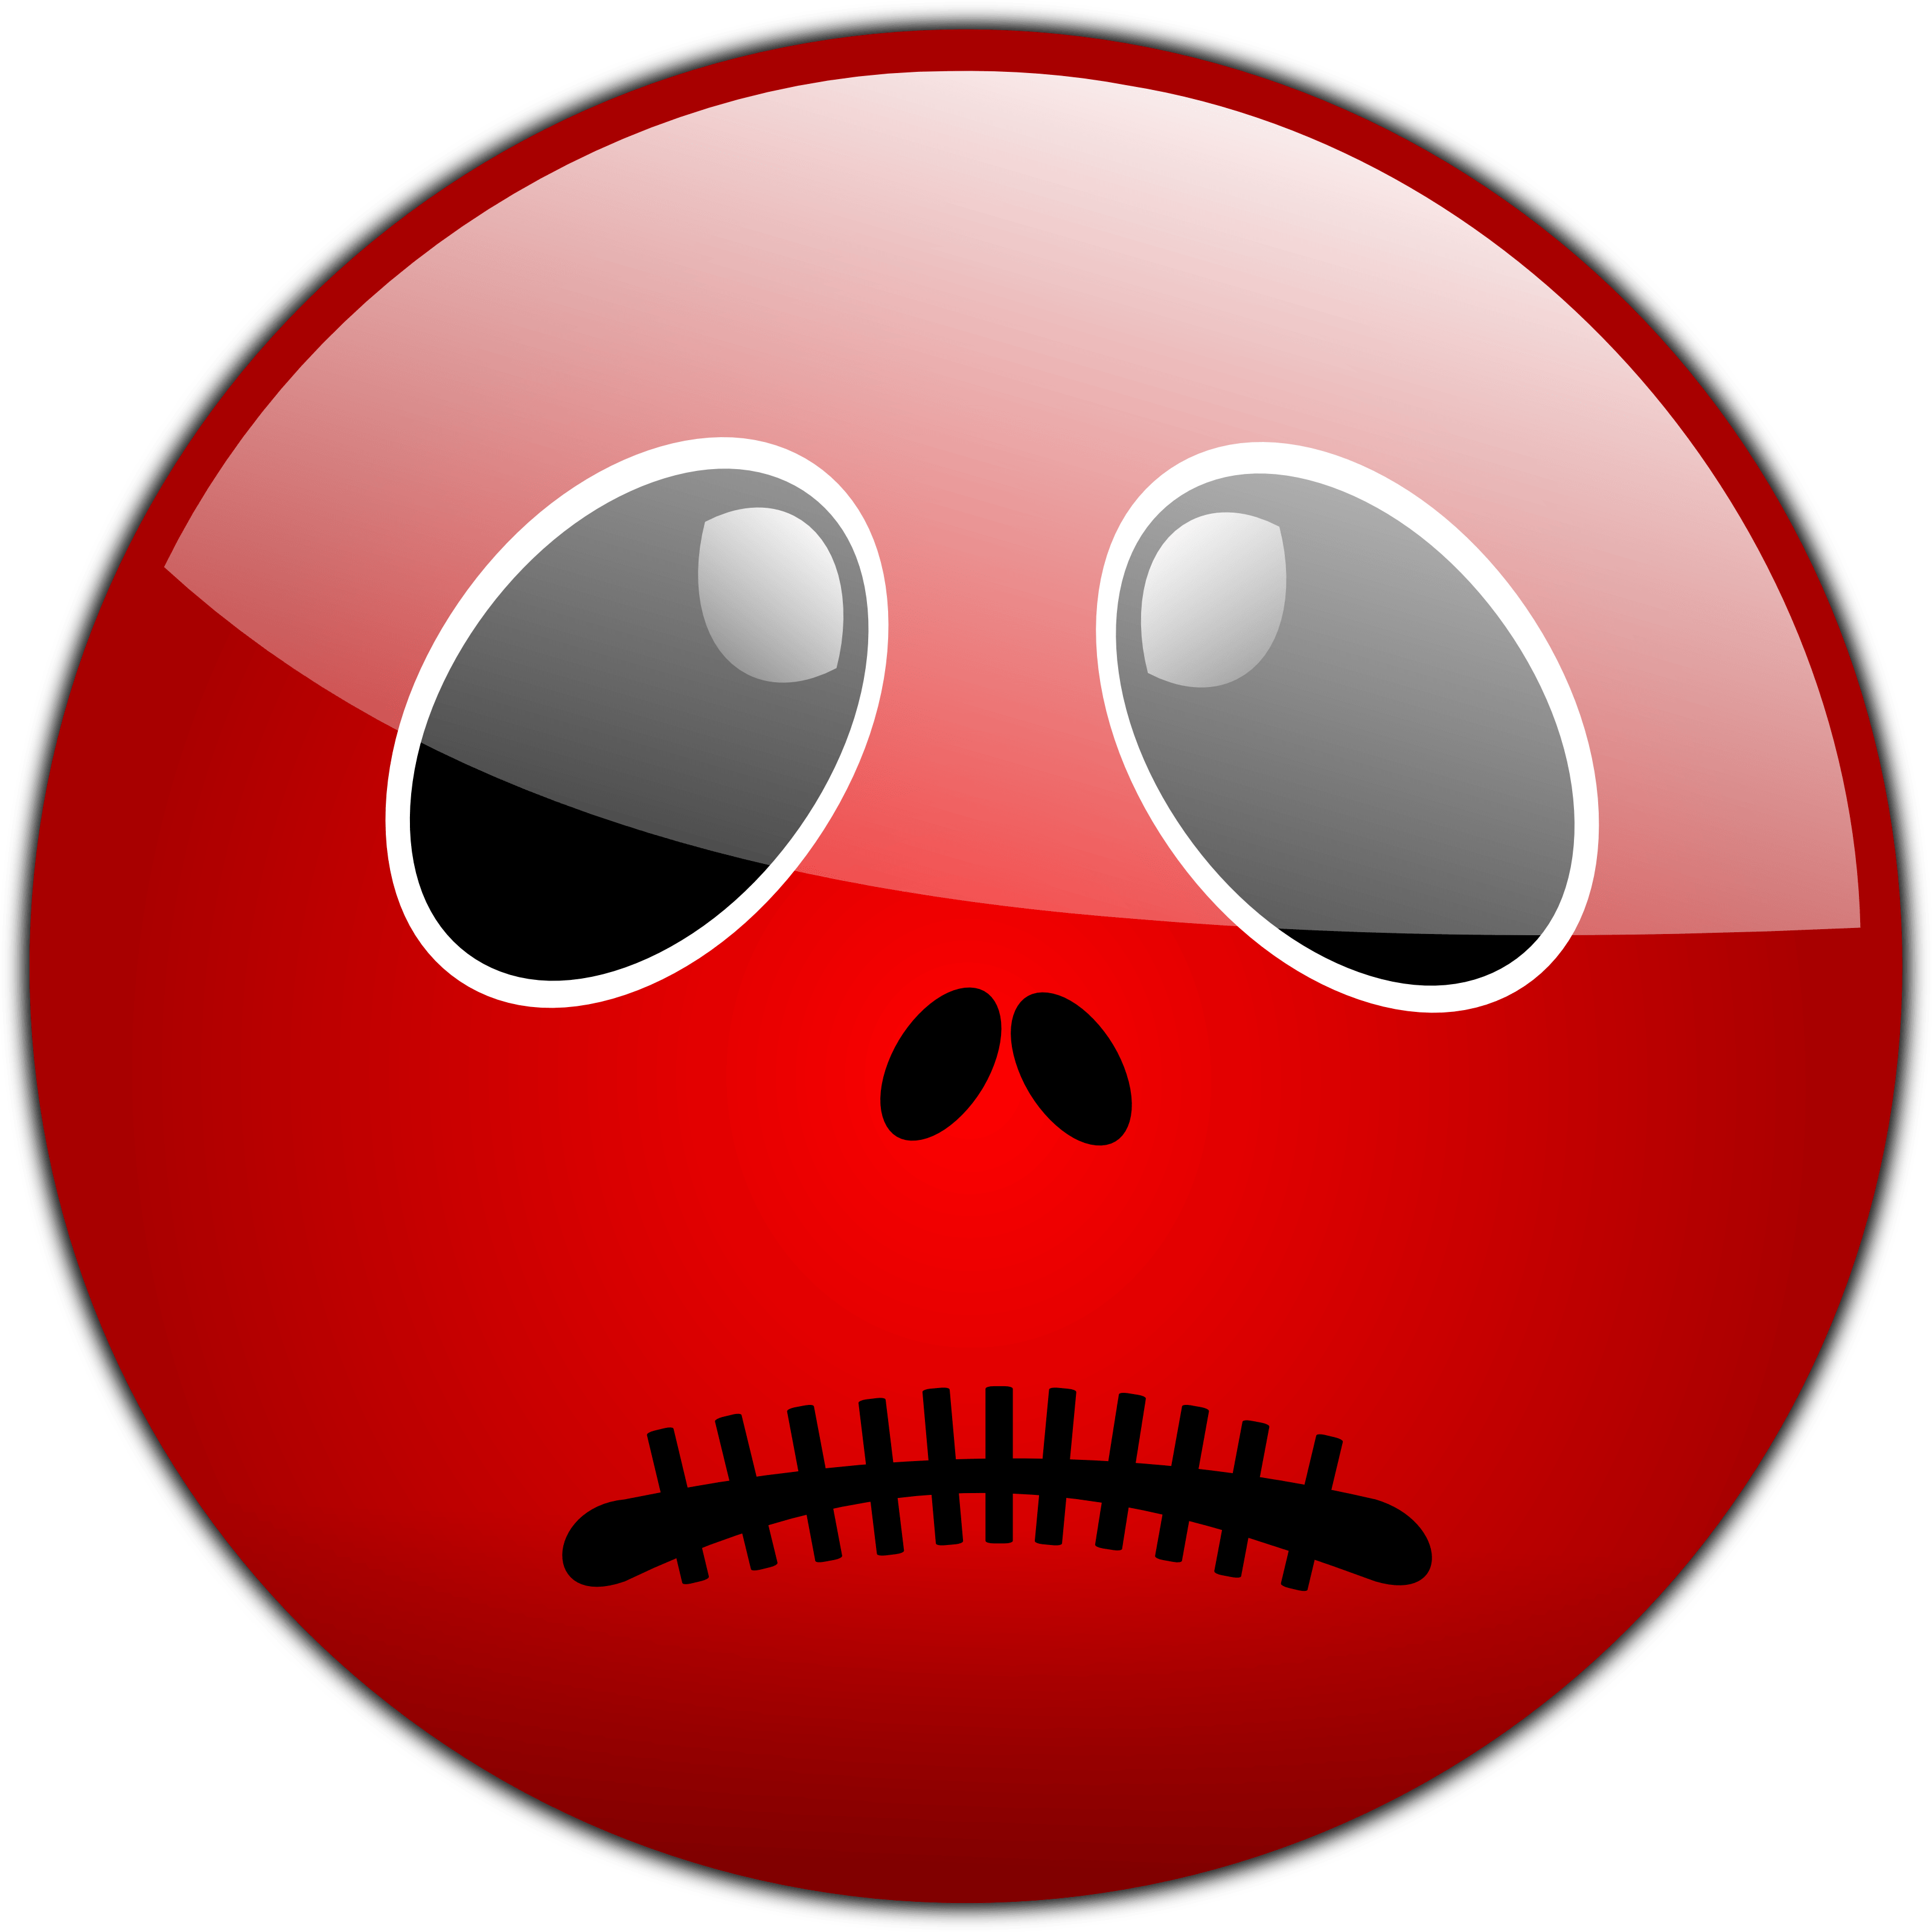 Halloween smiley face clipart image royalty free download Halloween Smileys Cliparts - Cliparts Zone image royalty free download